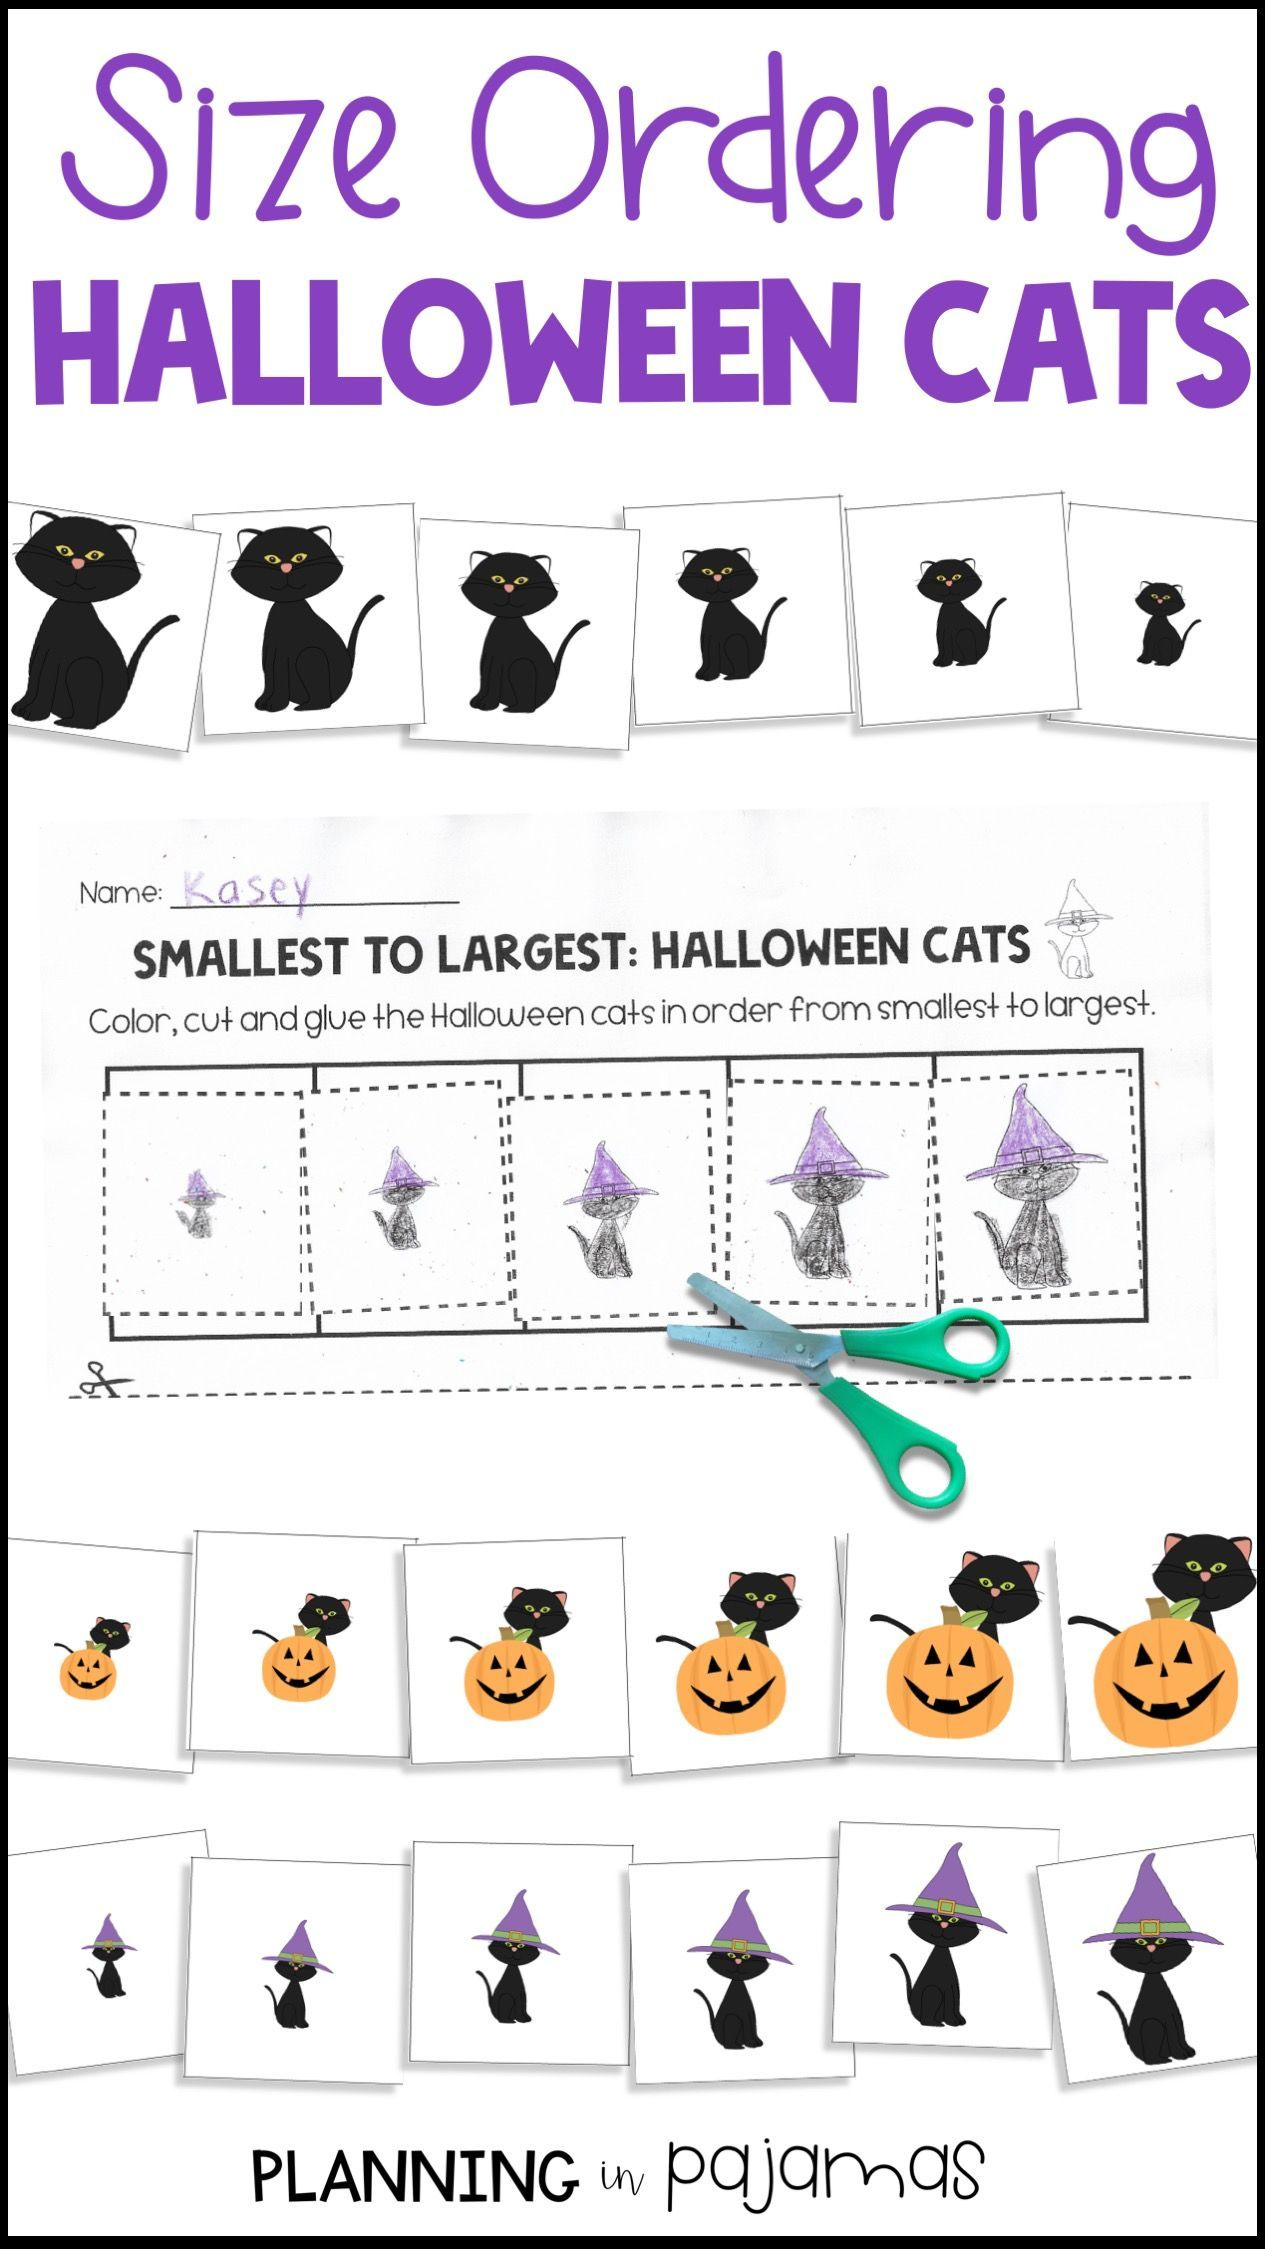 Halloween Black Cats Size Ordering From Smallest To Largest Activities Worksheet And Card Fall Crafts For Toddlers Black Cat Halloween Halloween Math Lesson [ 2249 x 1265 Pixel ]